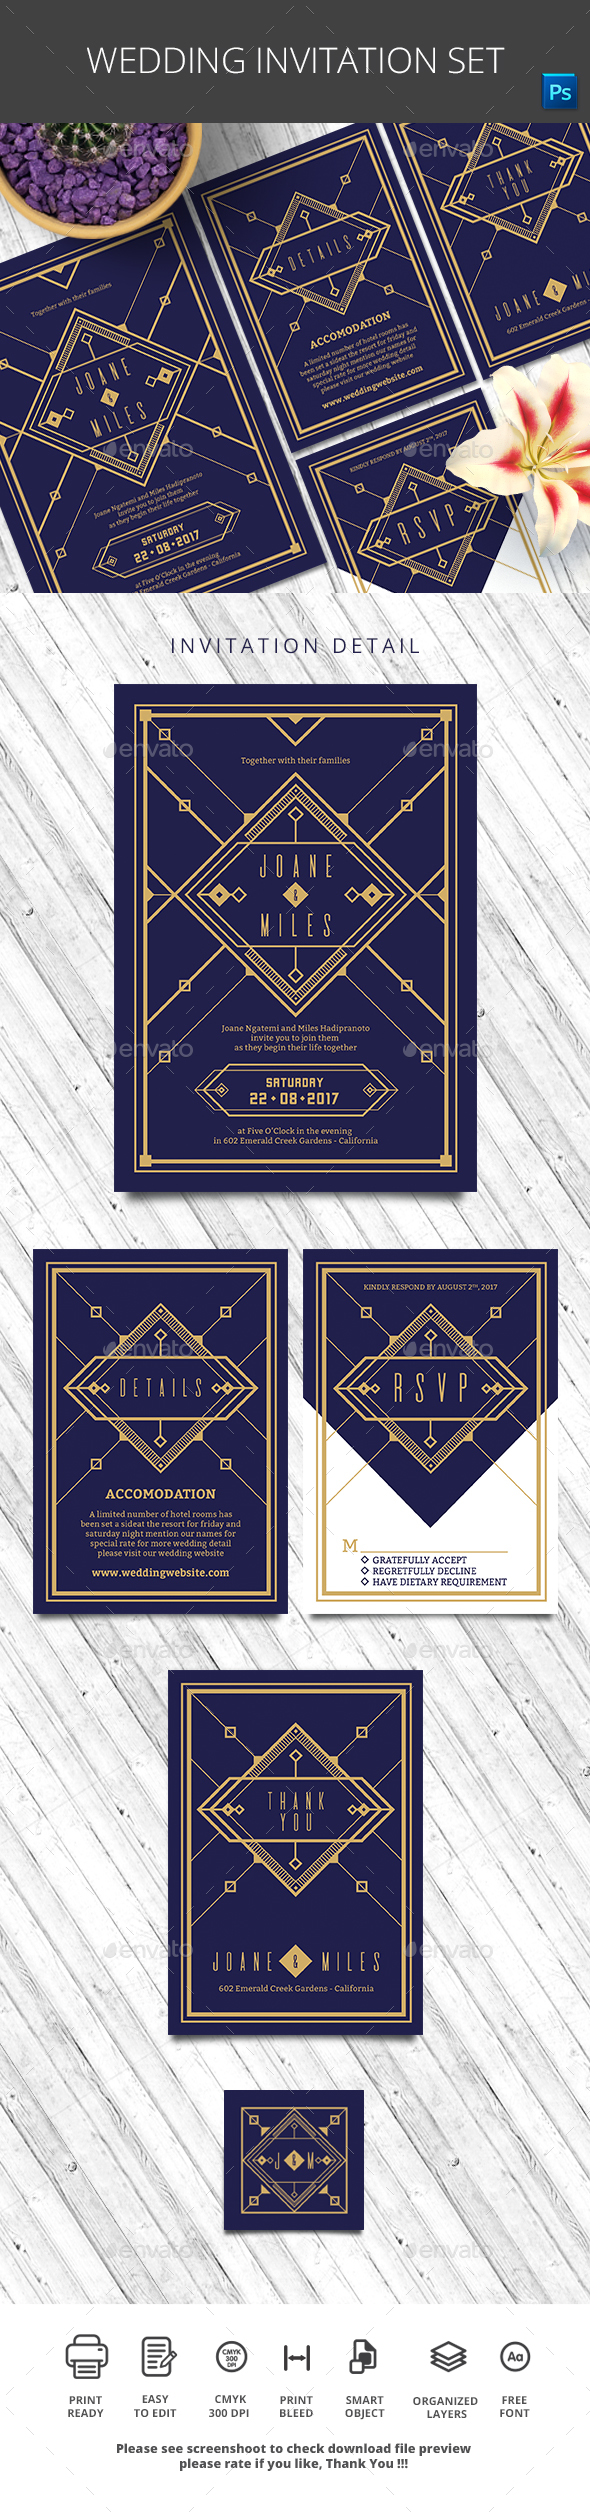 Wedding Invitation Set - Invitations Cards & Invites